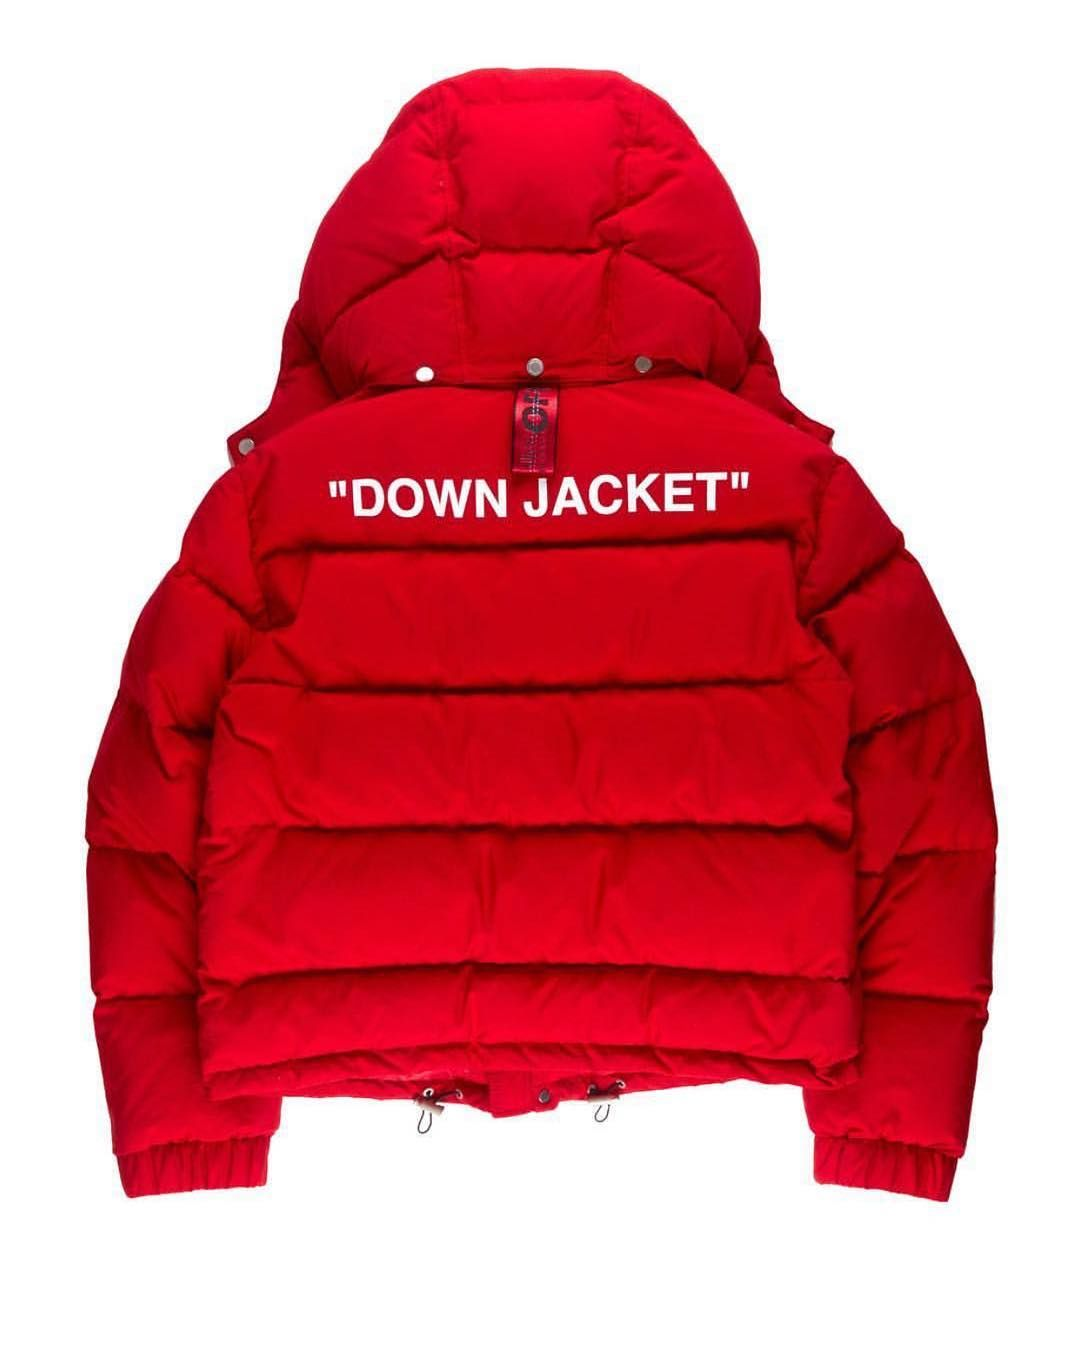 Off White On Instagram Fw18 Men S Off White Red Puffer Jacket Product Image C O Patronofthenew [ 1349 x 1080 Pixel ]